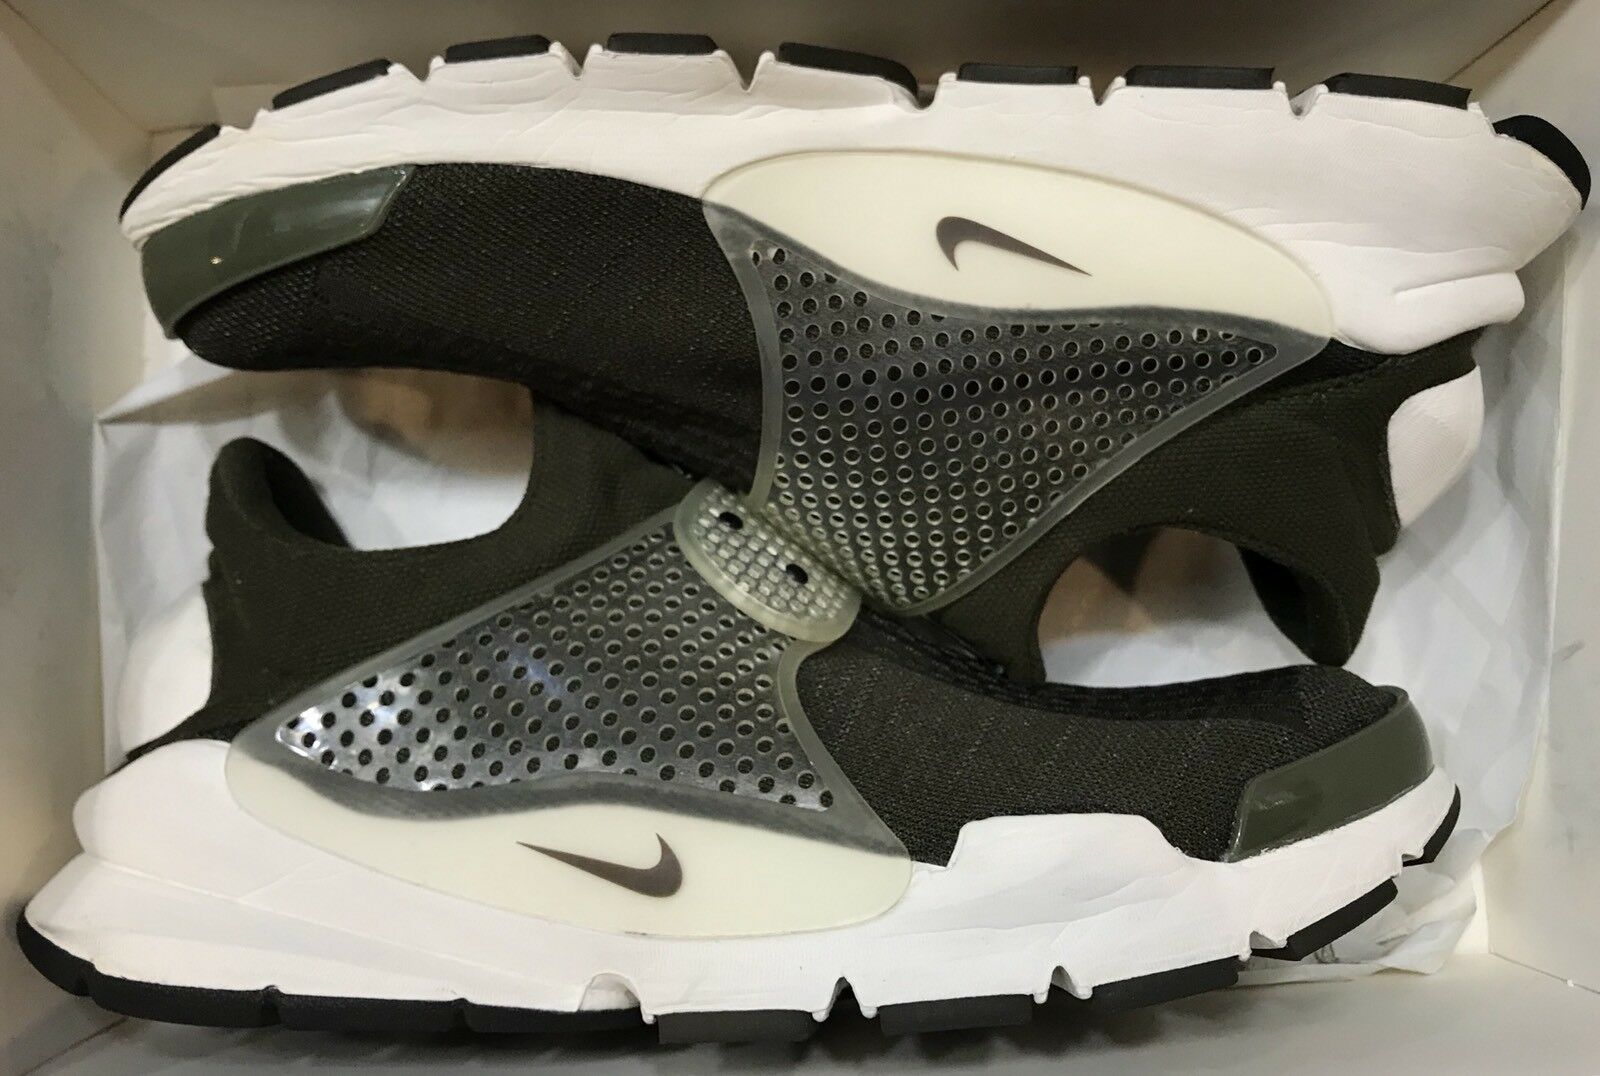 Nike Sock Dart SP Fragment Dark Dark Dark Loden Sail Green Off White 728748-300  Presto 12 73884c